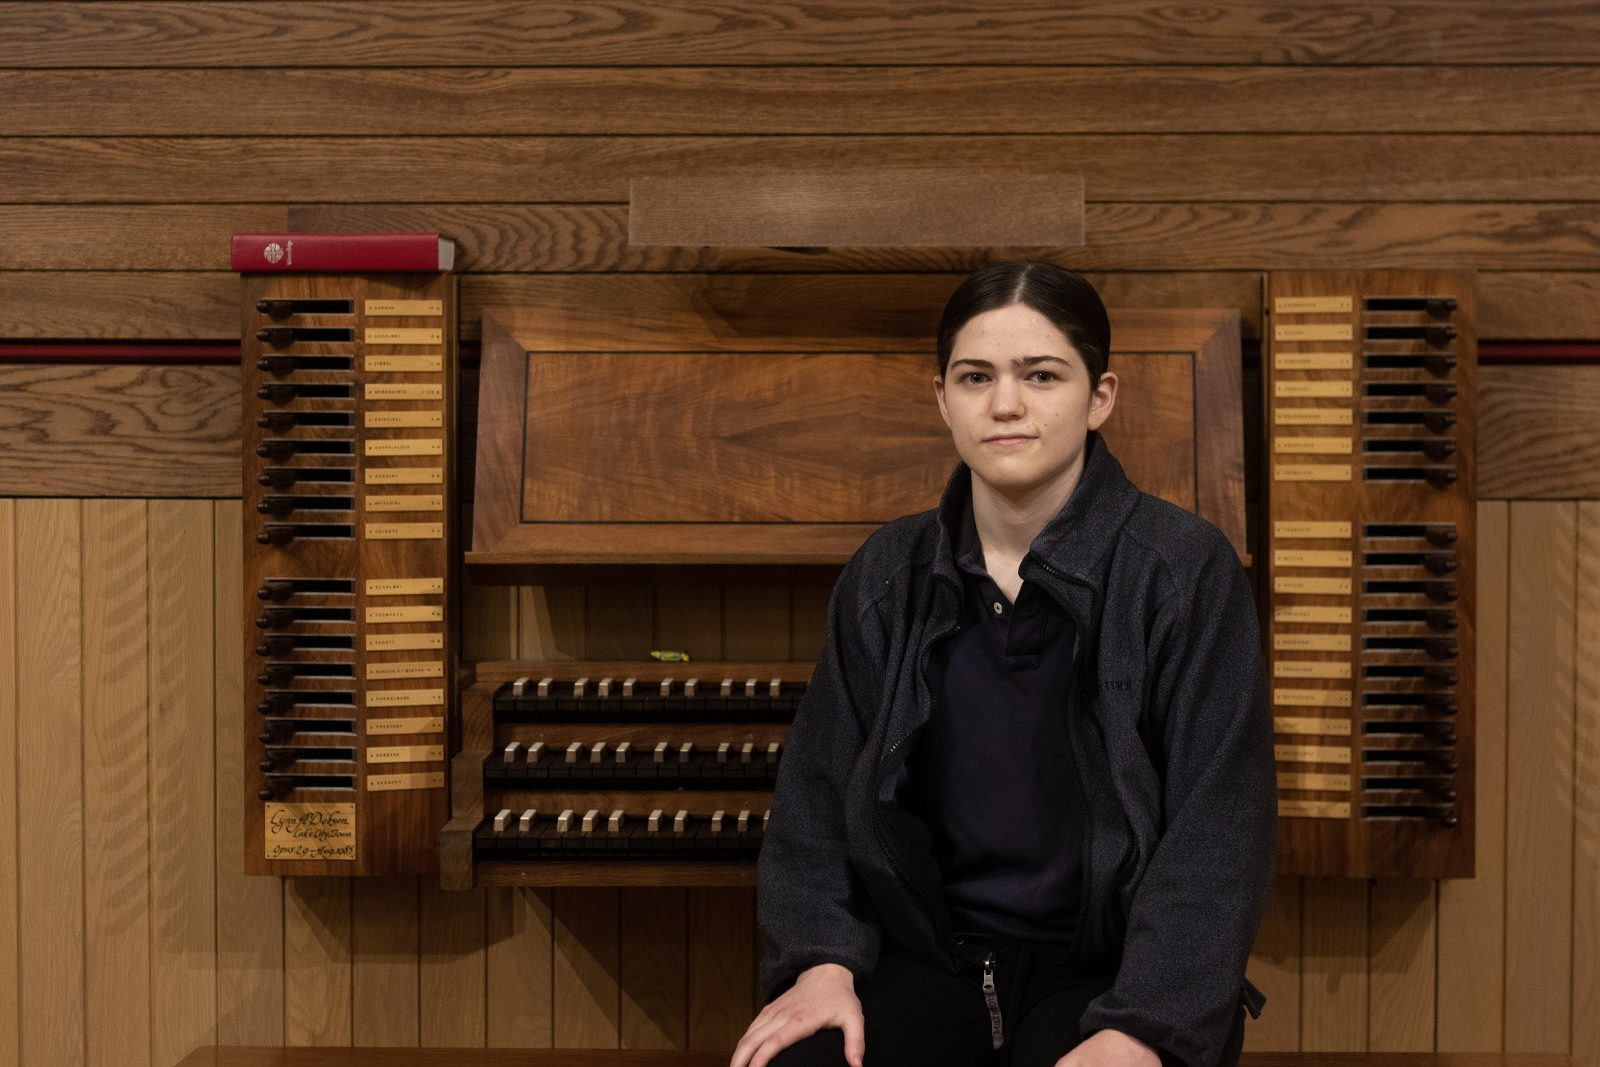 Portrait of Sarah Palmer in front of an organ.